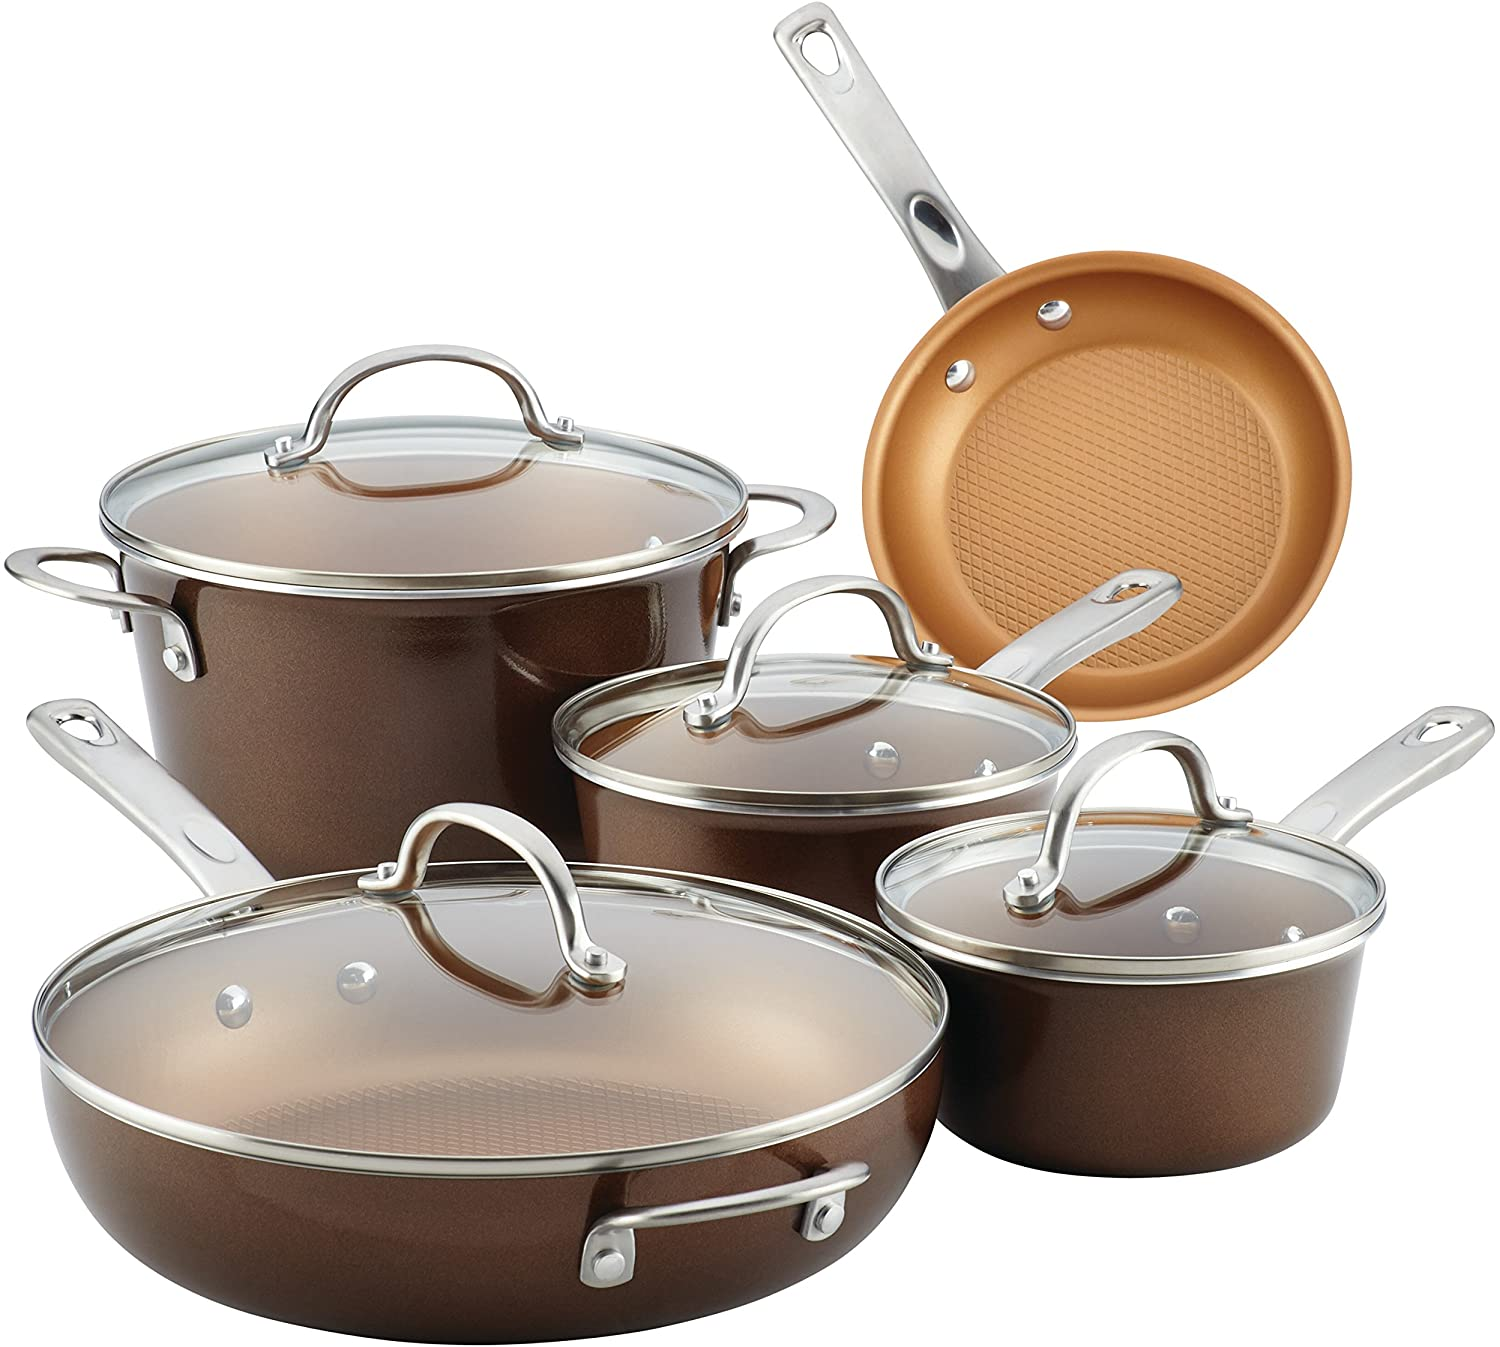 Ayesha Curry Home Collection Nonstick Cookware Pots and Pans Set